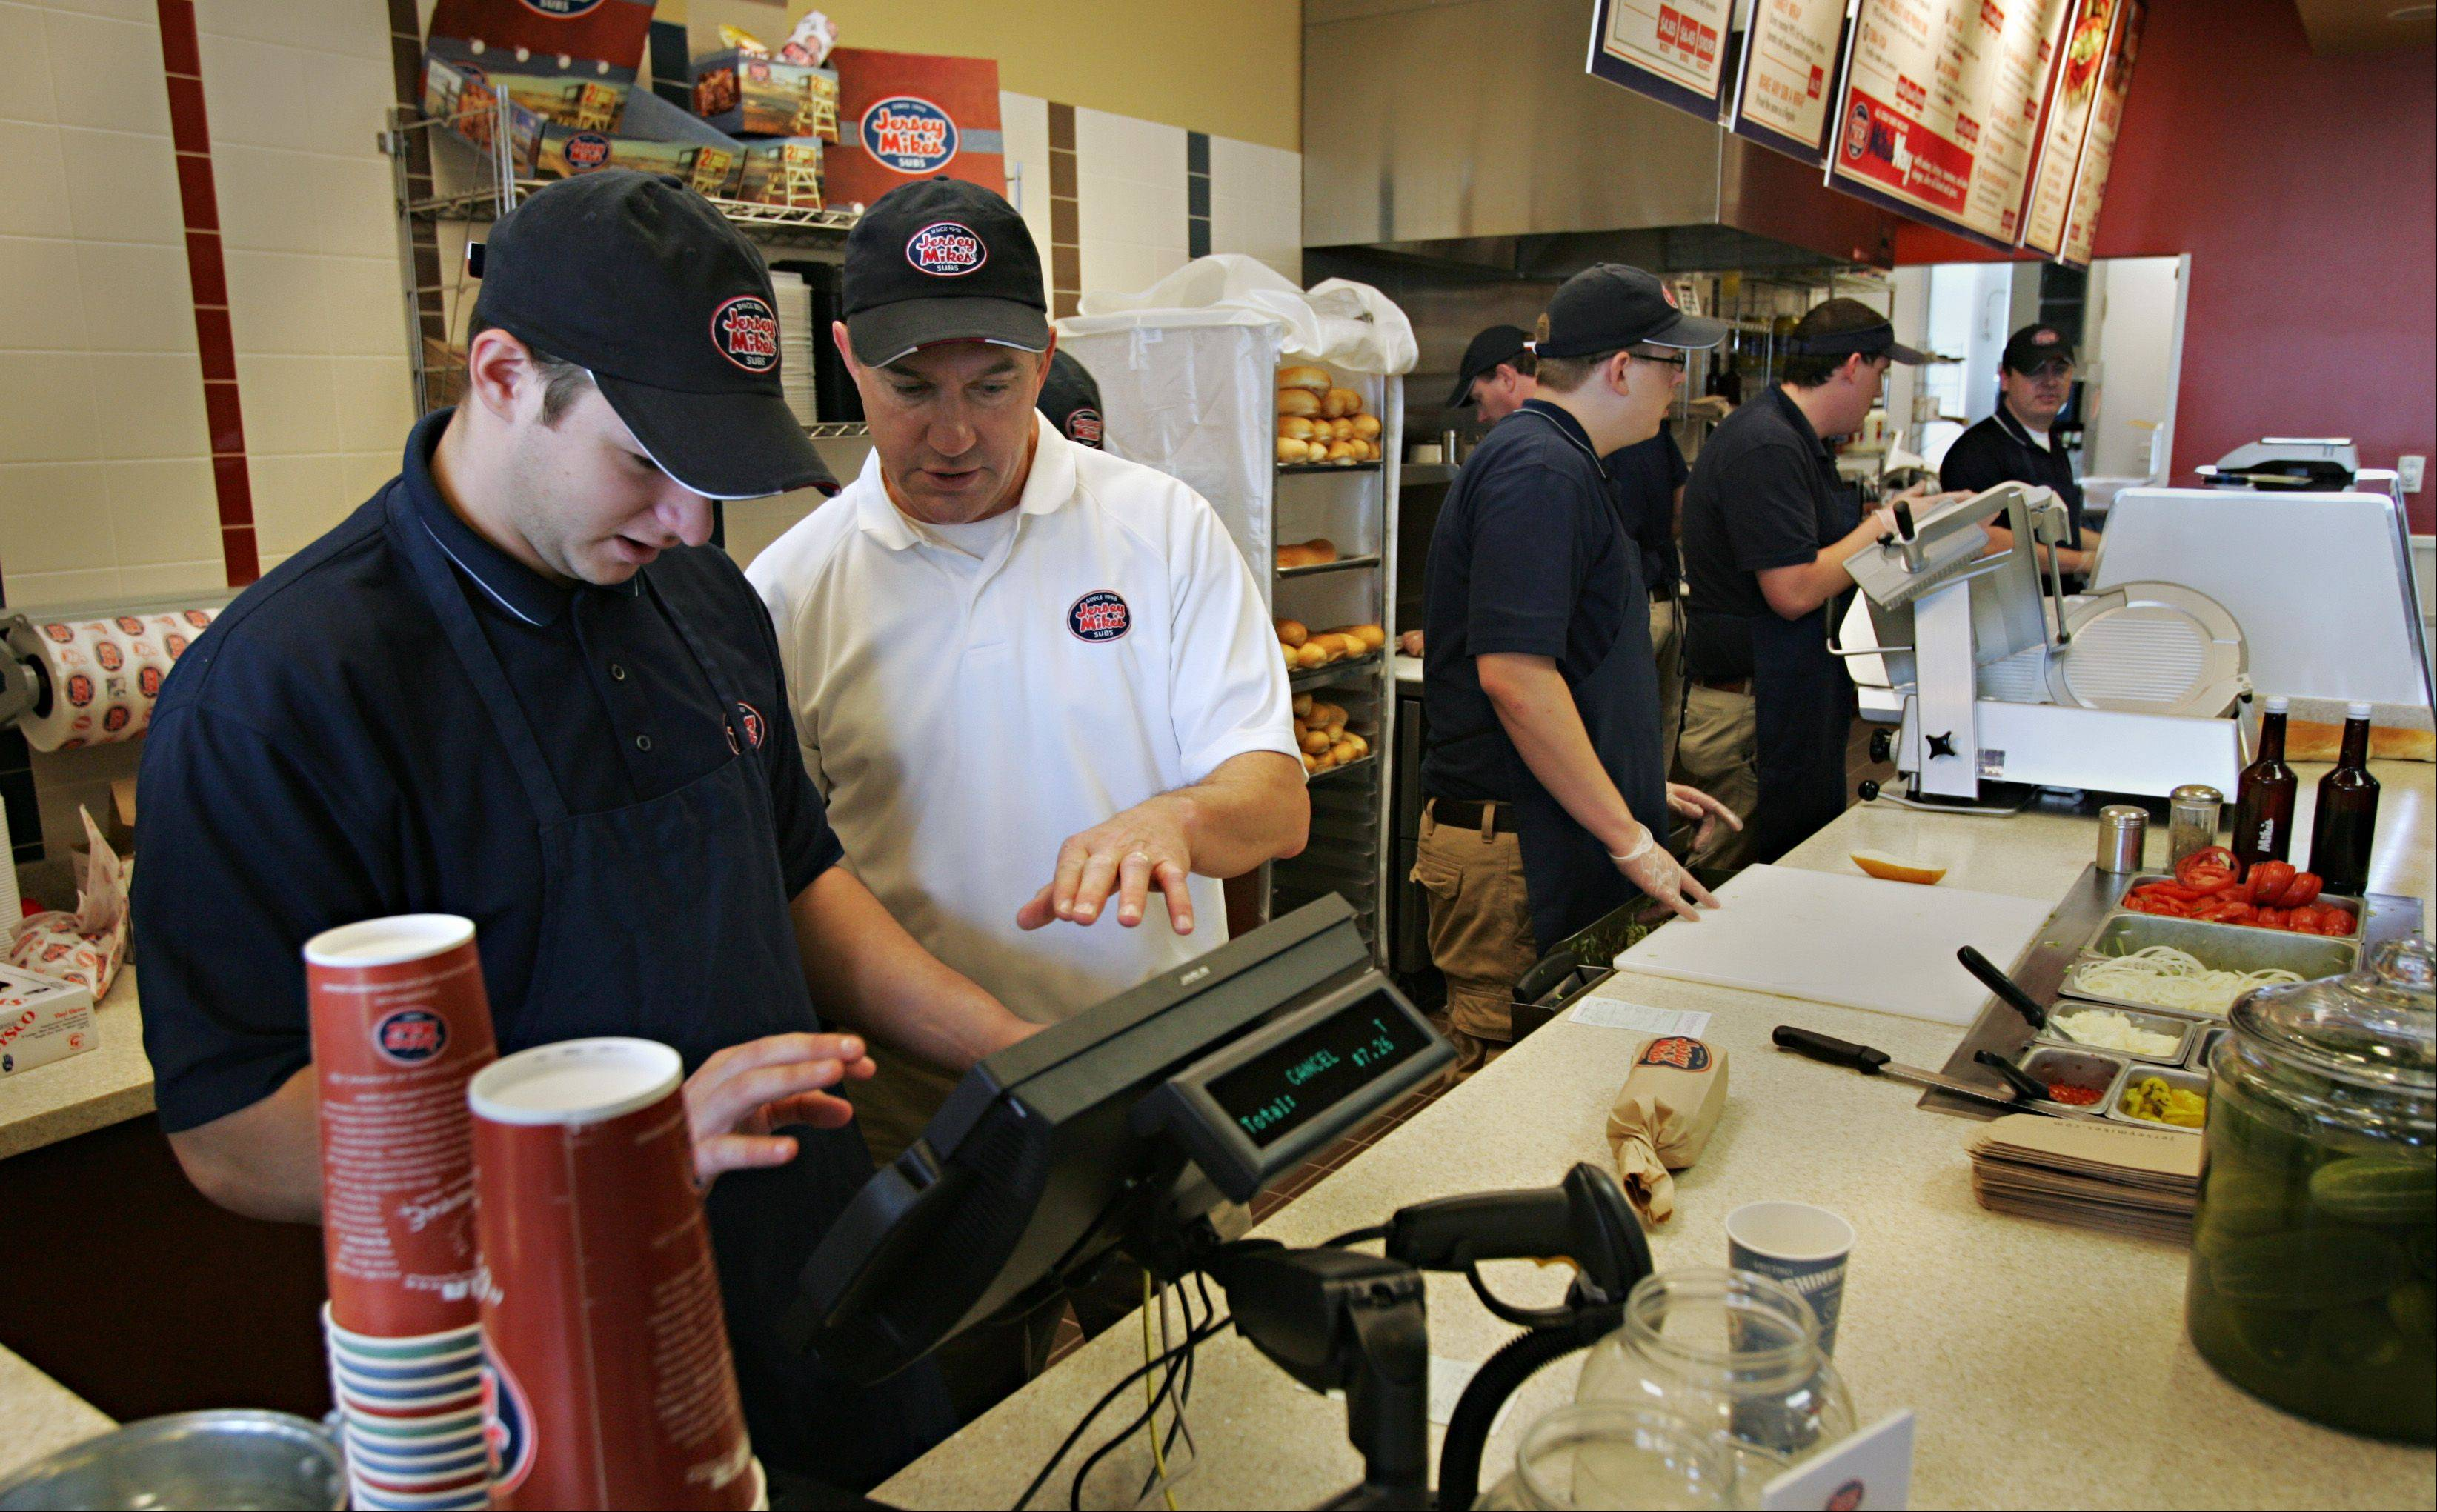 Jersey Mike's Subs franchisee Jim Shipman works with new employee Zach Richman in South Elgin. In its first week in business, the restaurant raised funds for South Elgin and St. Charles North high schools.